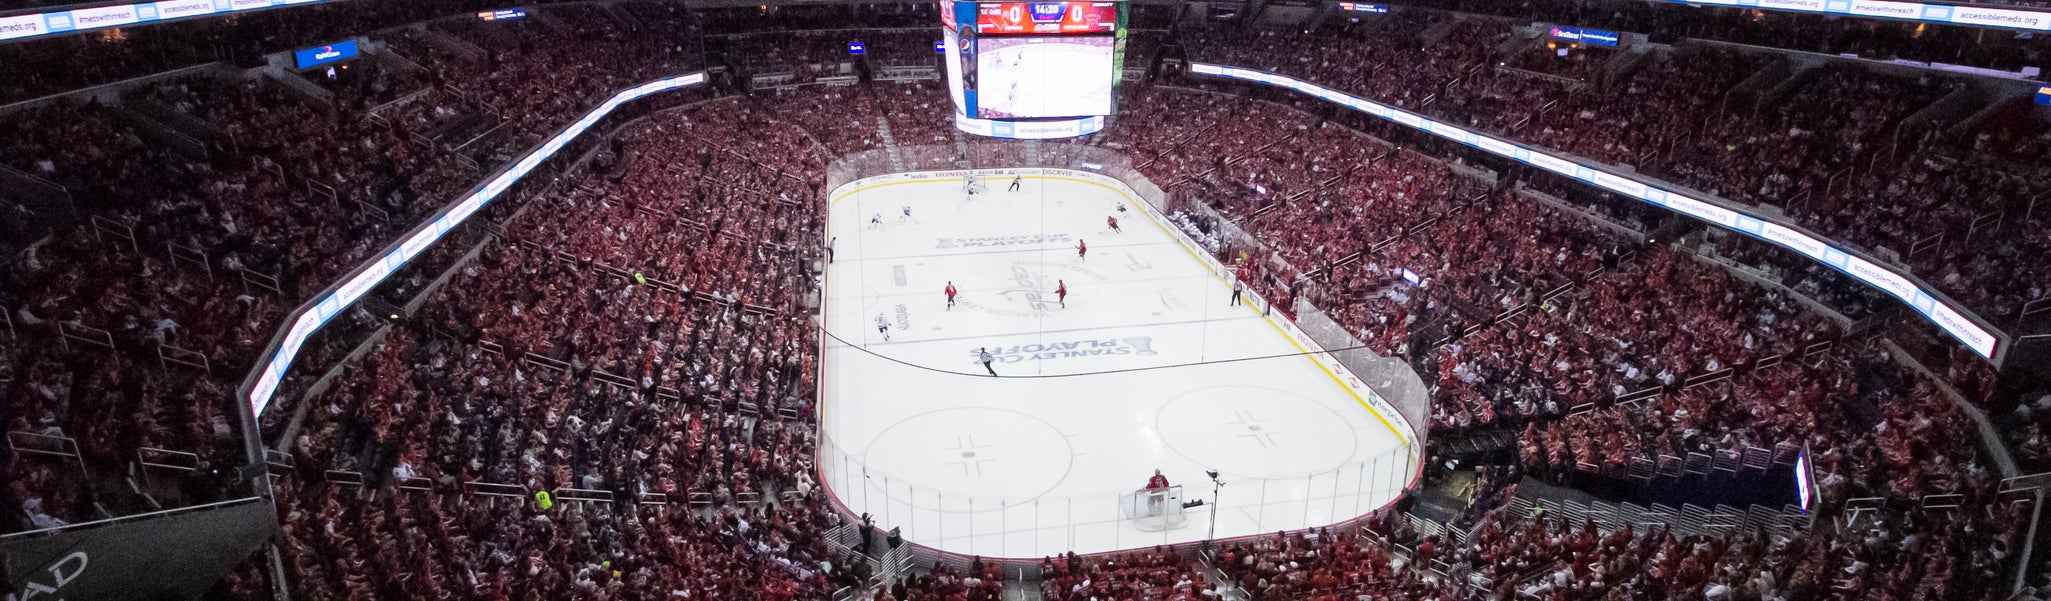 Seat view from Mezzanine End 424 at Capital One Arena